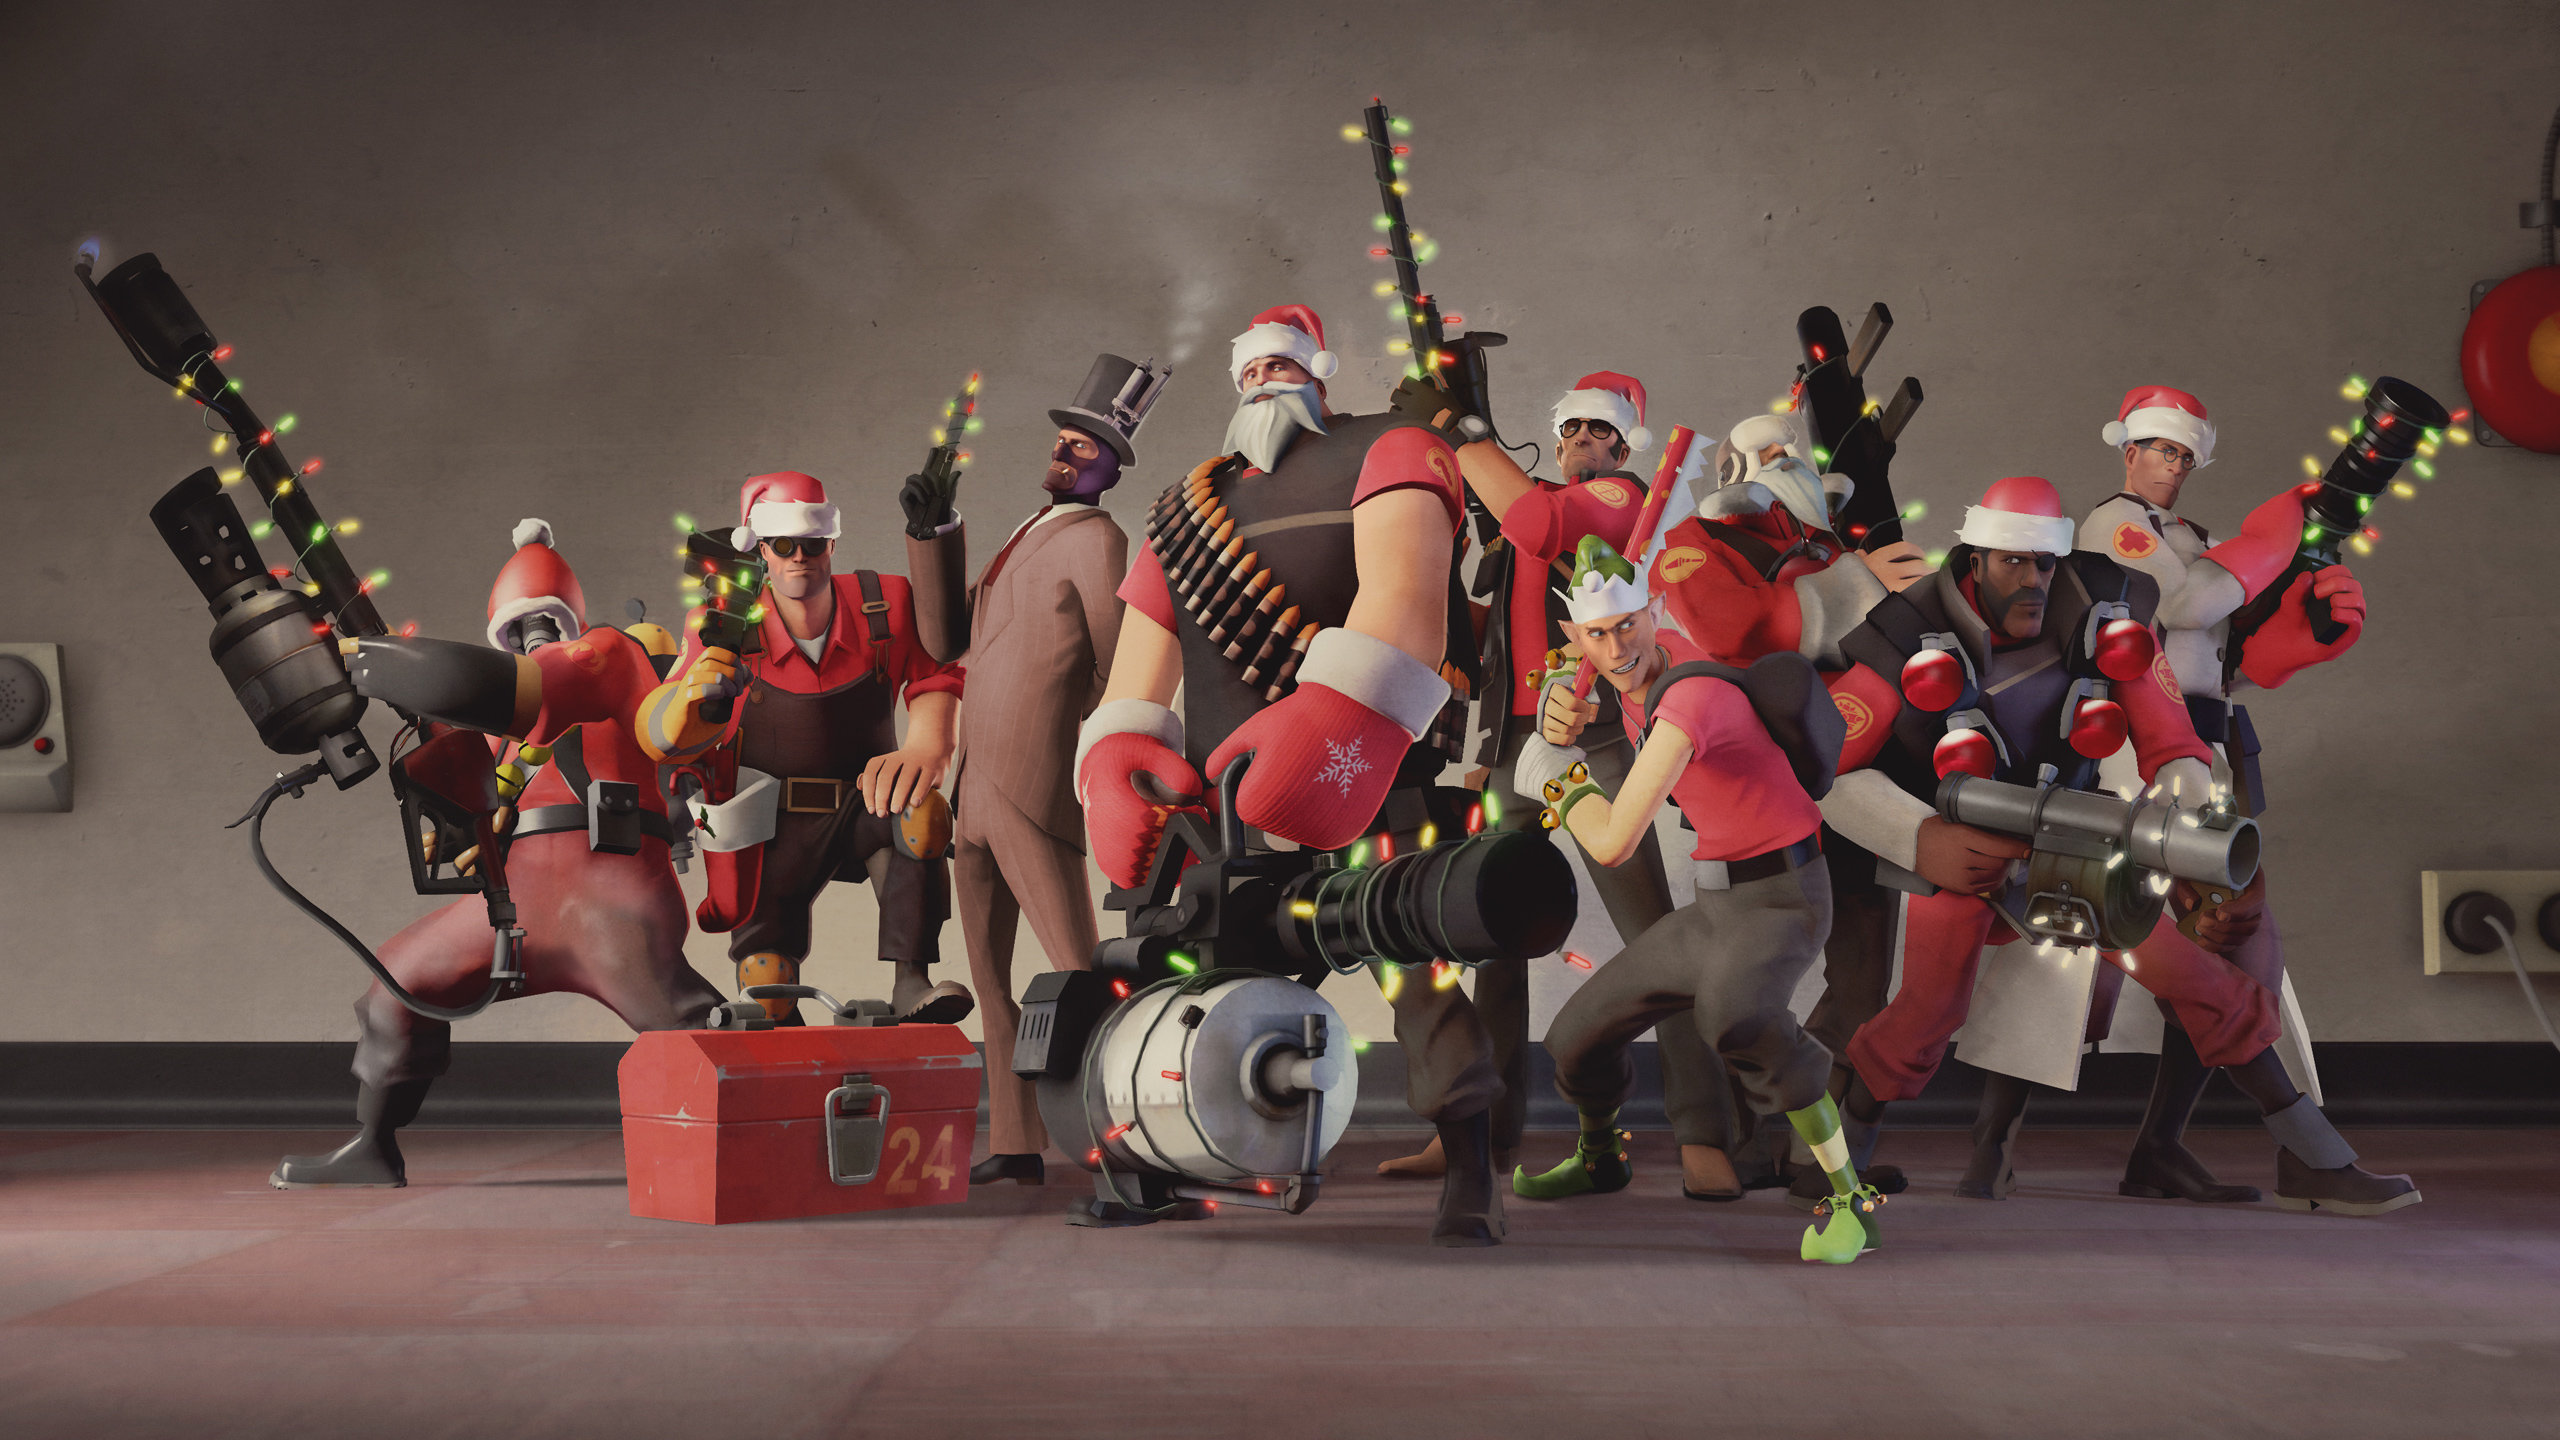 Awesome Team Fortress 2 Free Wallpaper Id - Team Fortress 2 - HD Wallpaper